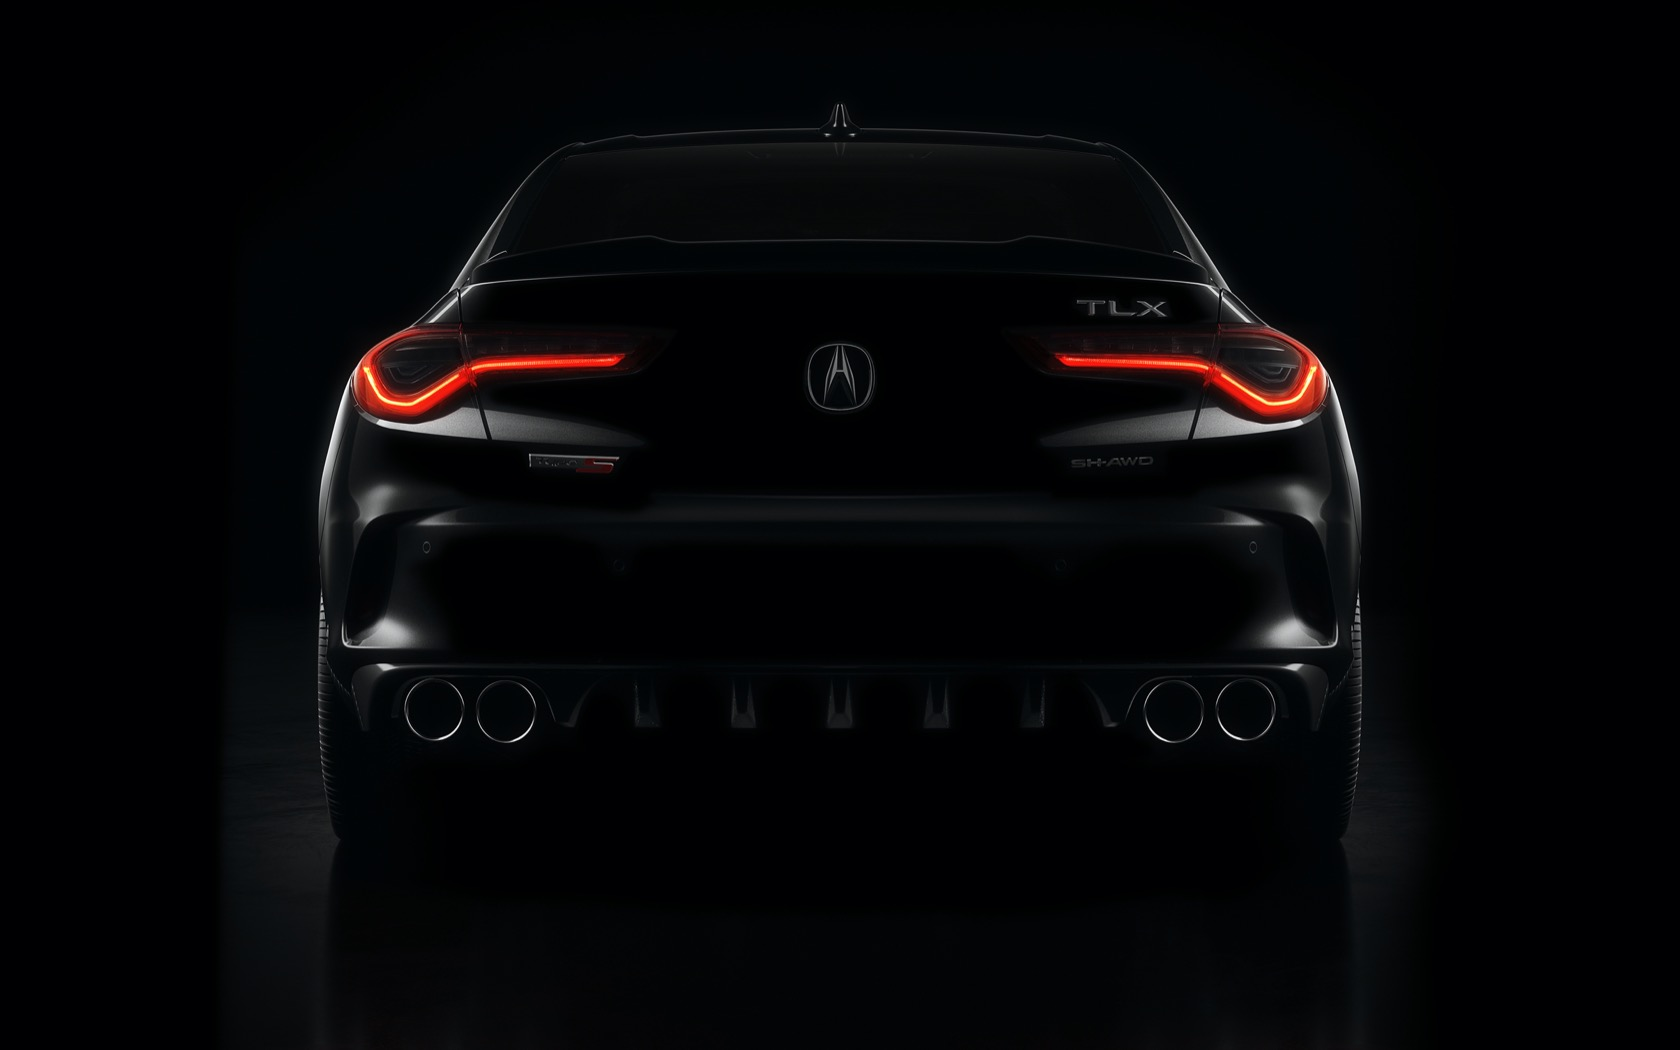 2021 Acura Tlx Reveal Set New Tlx Type S With Turbo V6 Confirmed Slashgear